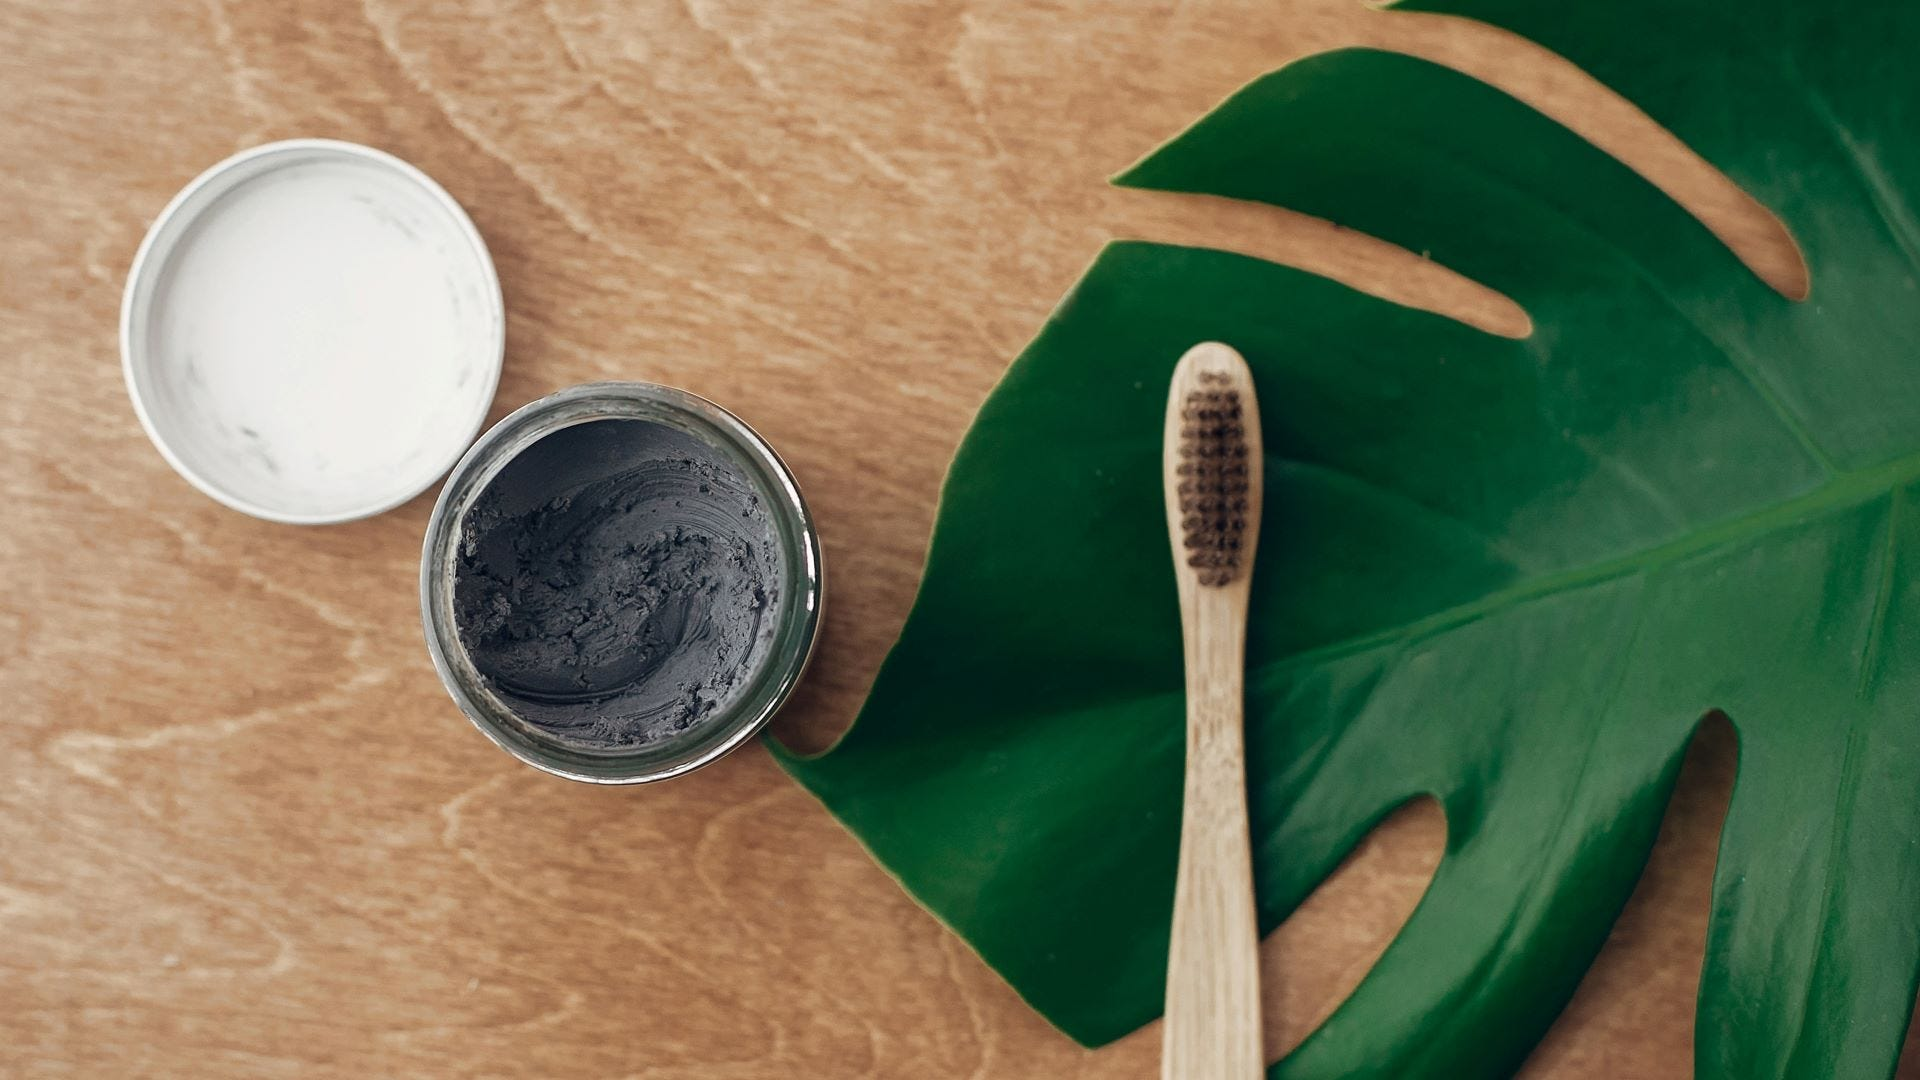 Natural activated charcoal toothpaste in glass jar next to a bamboo toothbrush.